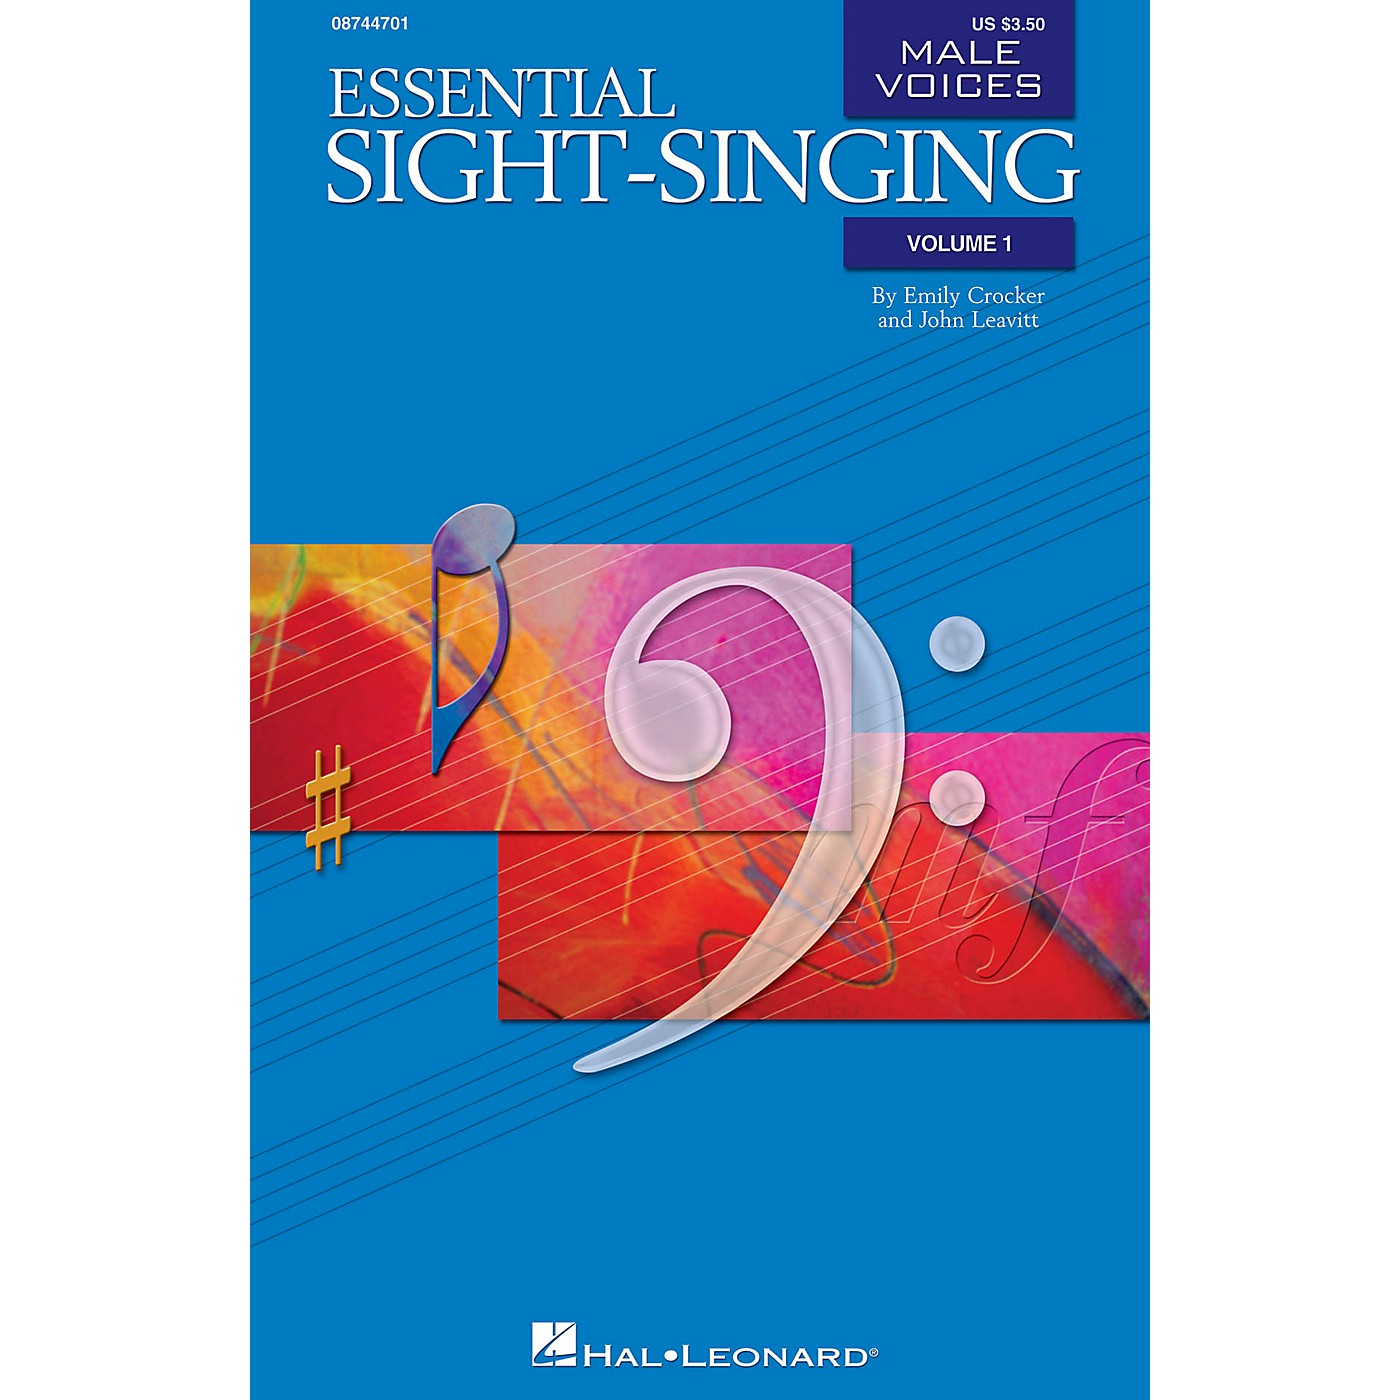 Hal Leonard Essential Sight-Singing Vol. 1 Male Voices (Male Voices Volume One Book) TB thumbnail